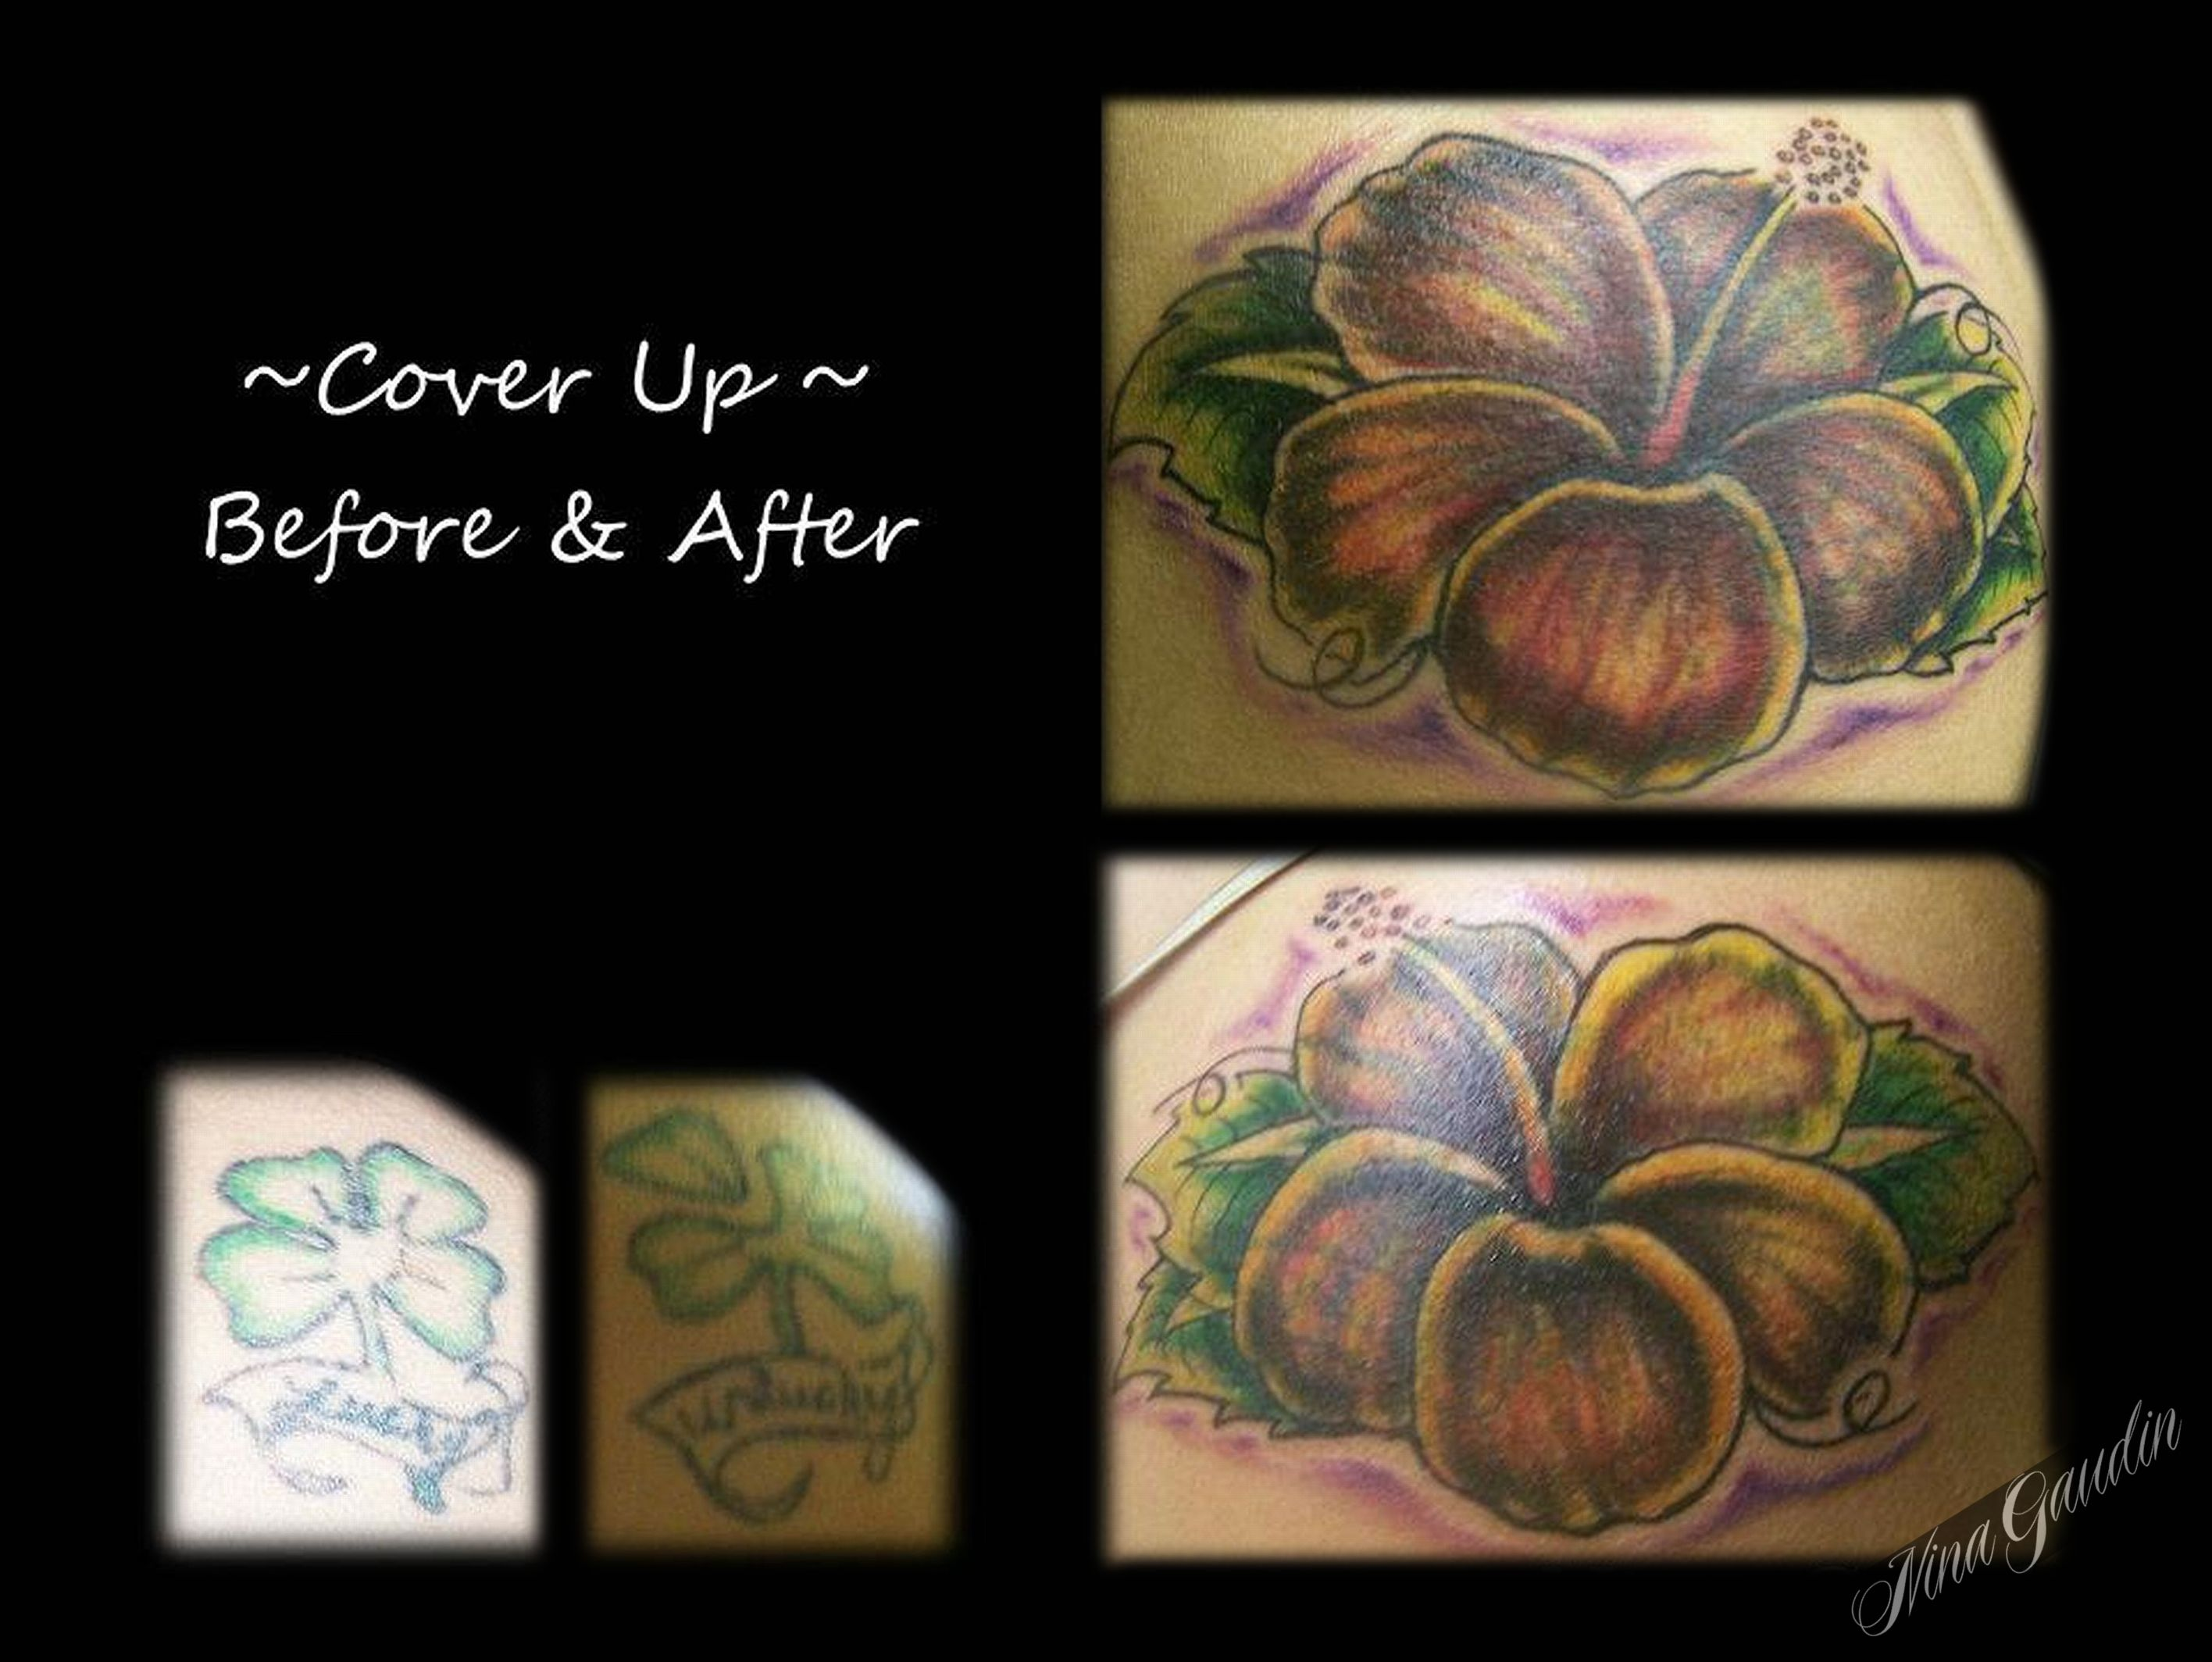 Hibiscus flower color shoulder cover up tattoos by nina gaudin of hibiscus flower color shoulder cover up tattoos by nina gaudin of 12th avenue tattoo in nampa id izmirmasajfo